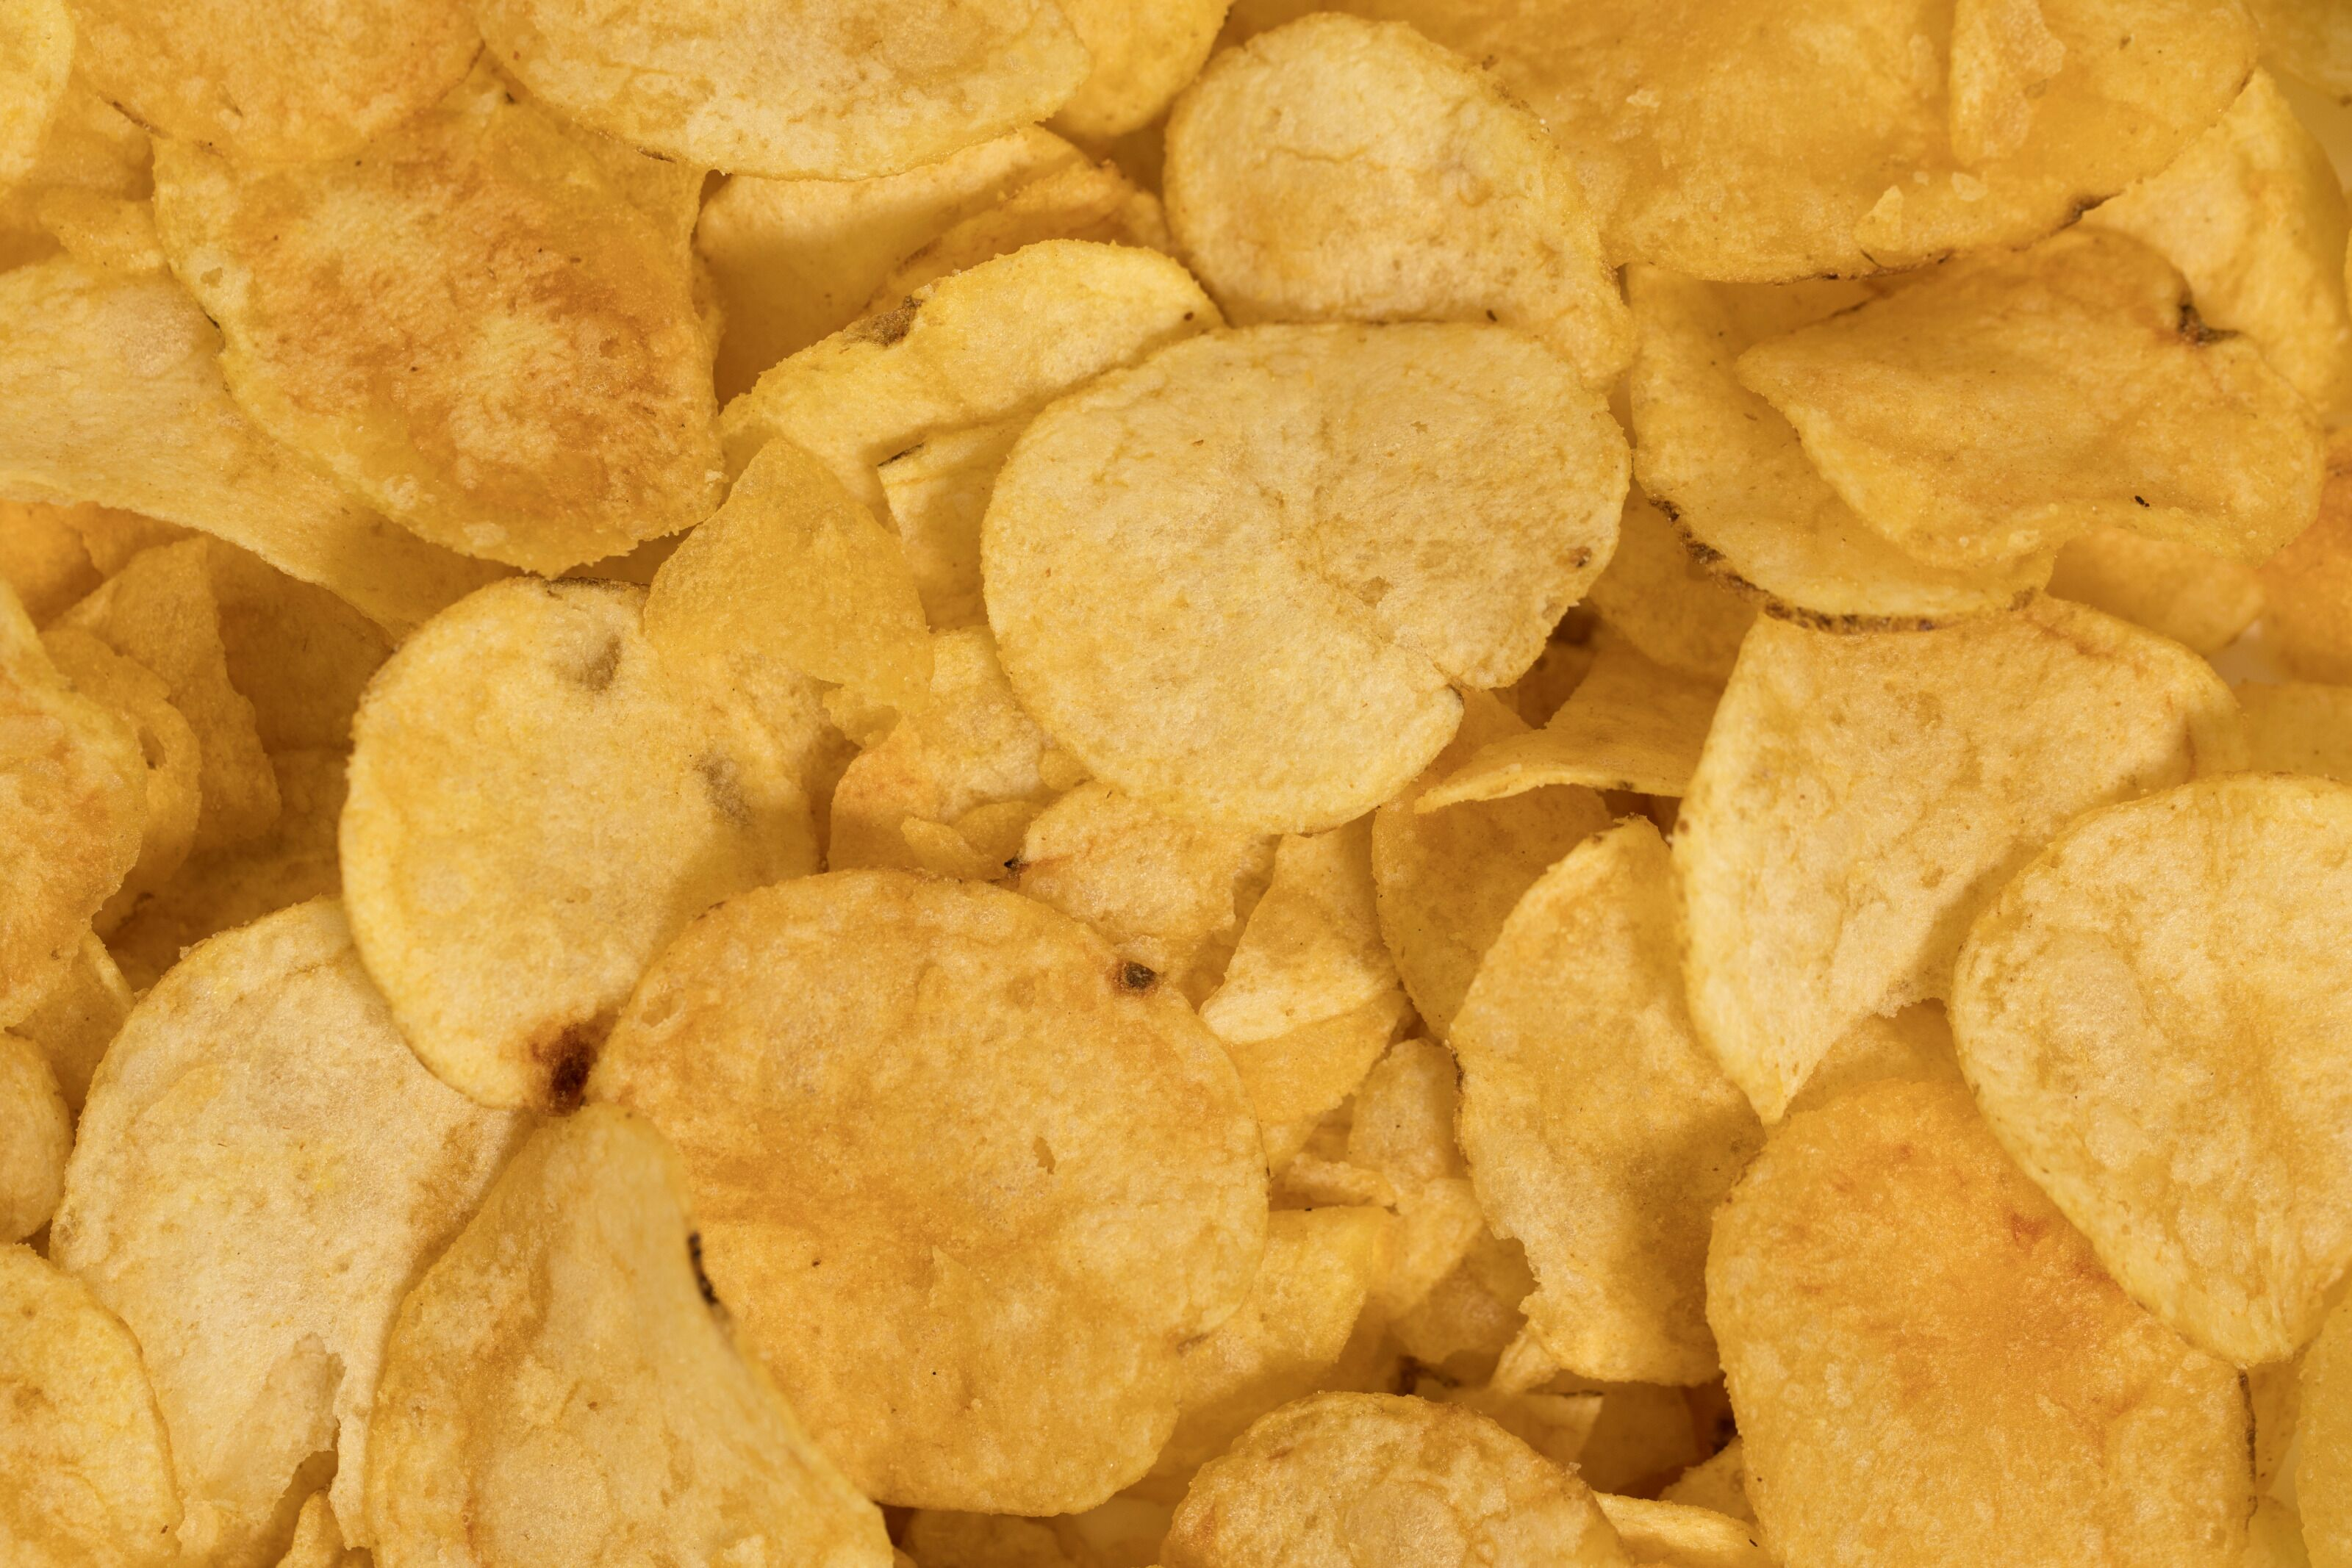 Kettle Chips fans prepare your taste buds, a new flavor is here and it has a kick to it